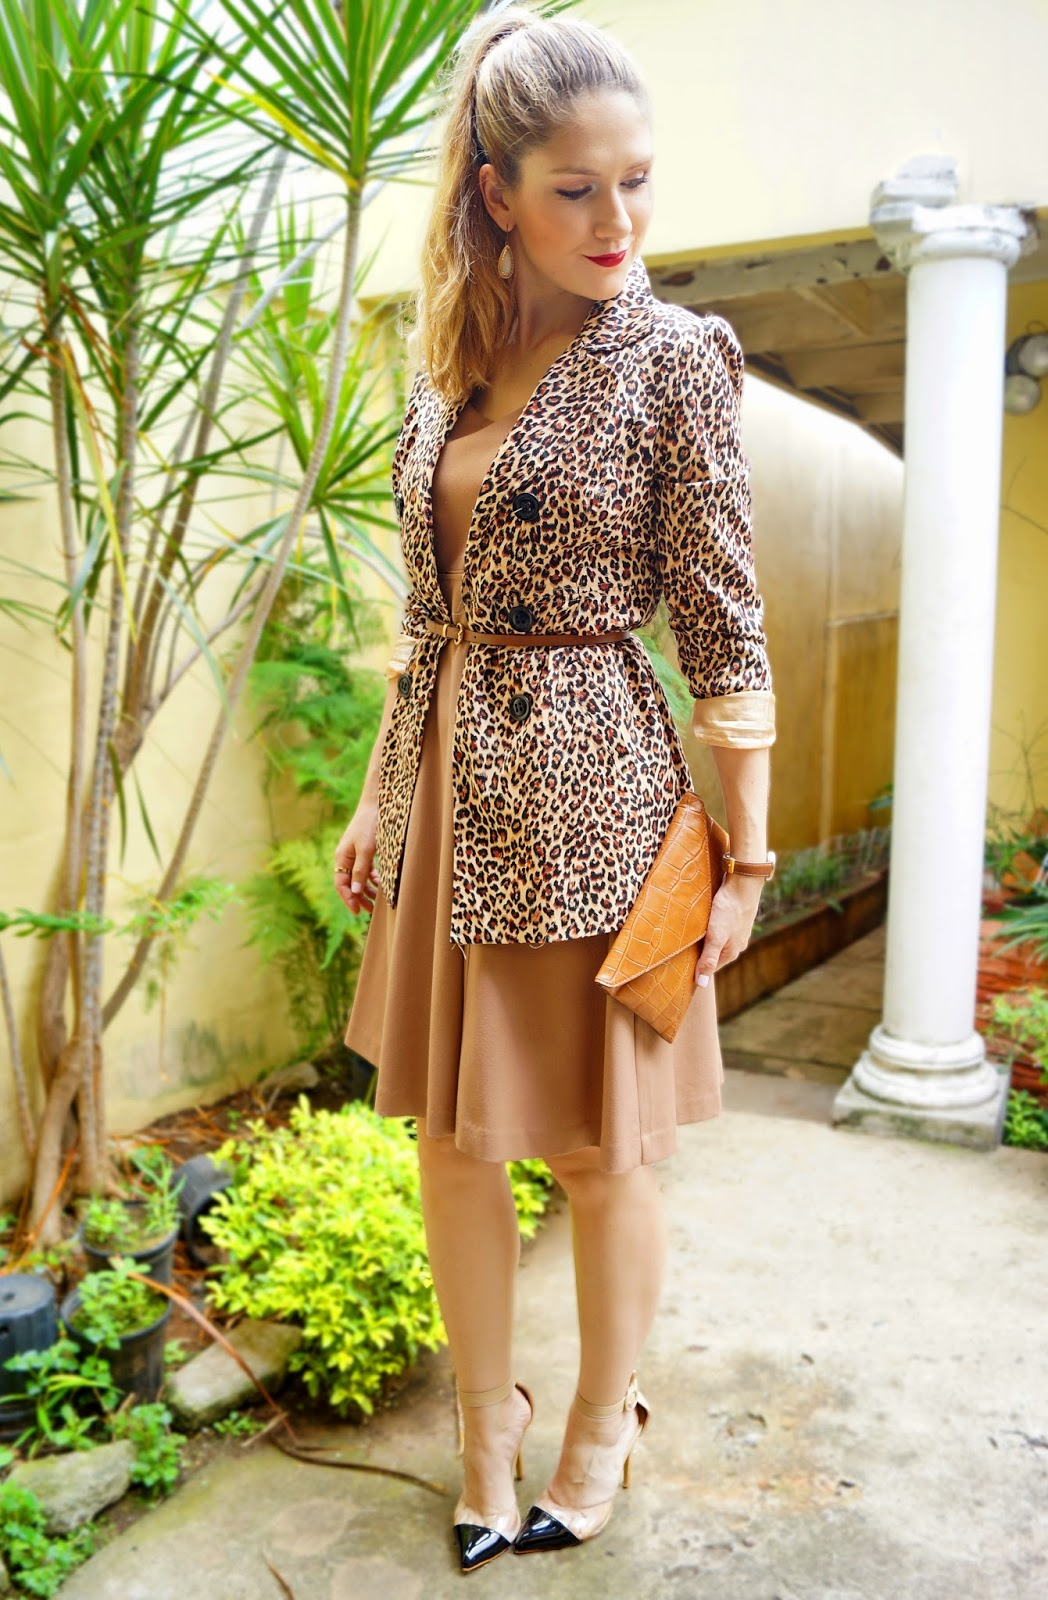 This leopard and beige combo looks so glam and effortlessly chic!